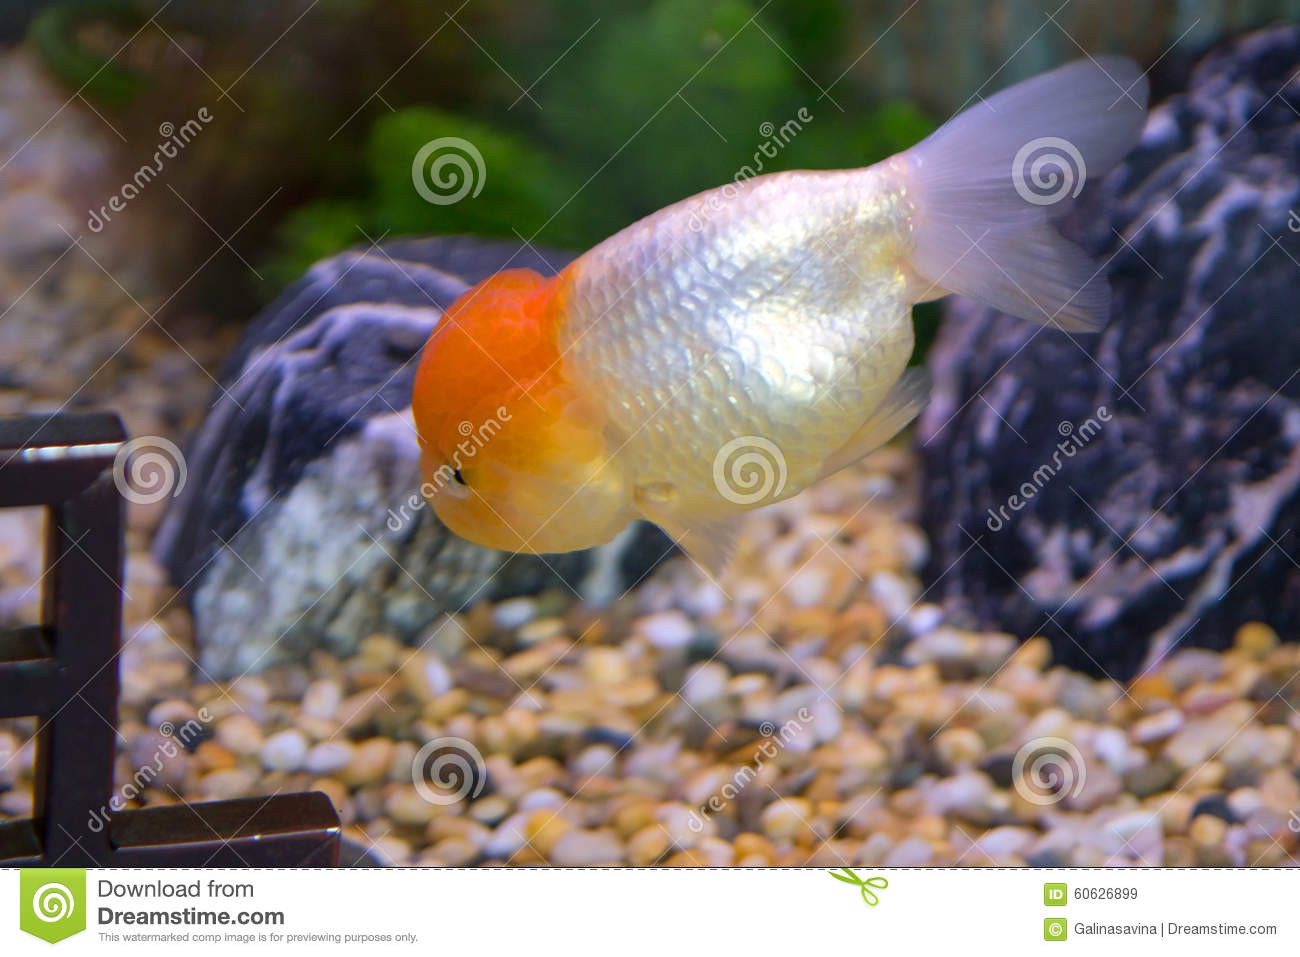 Poisson rouge d 39 aquarium oranda photo stock image for Aquarium poisson rouge nettoyage